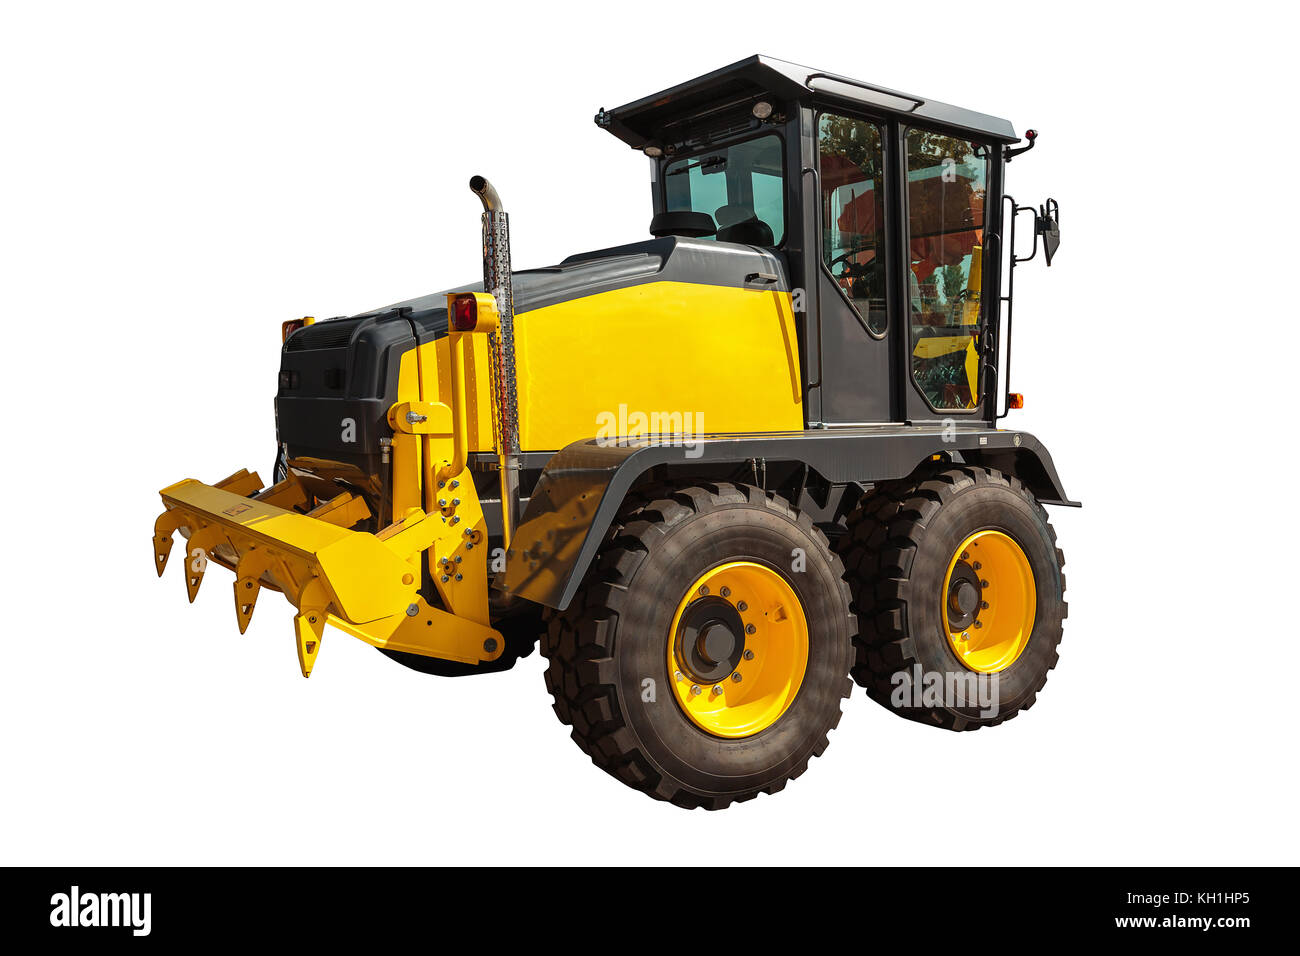 Grader and Excavator Construction Equipment with clipping path isolated on white background - Stock Image